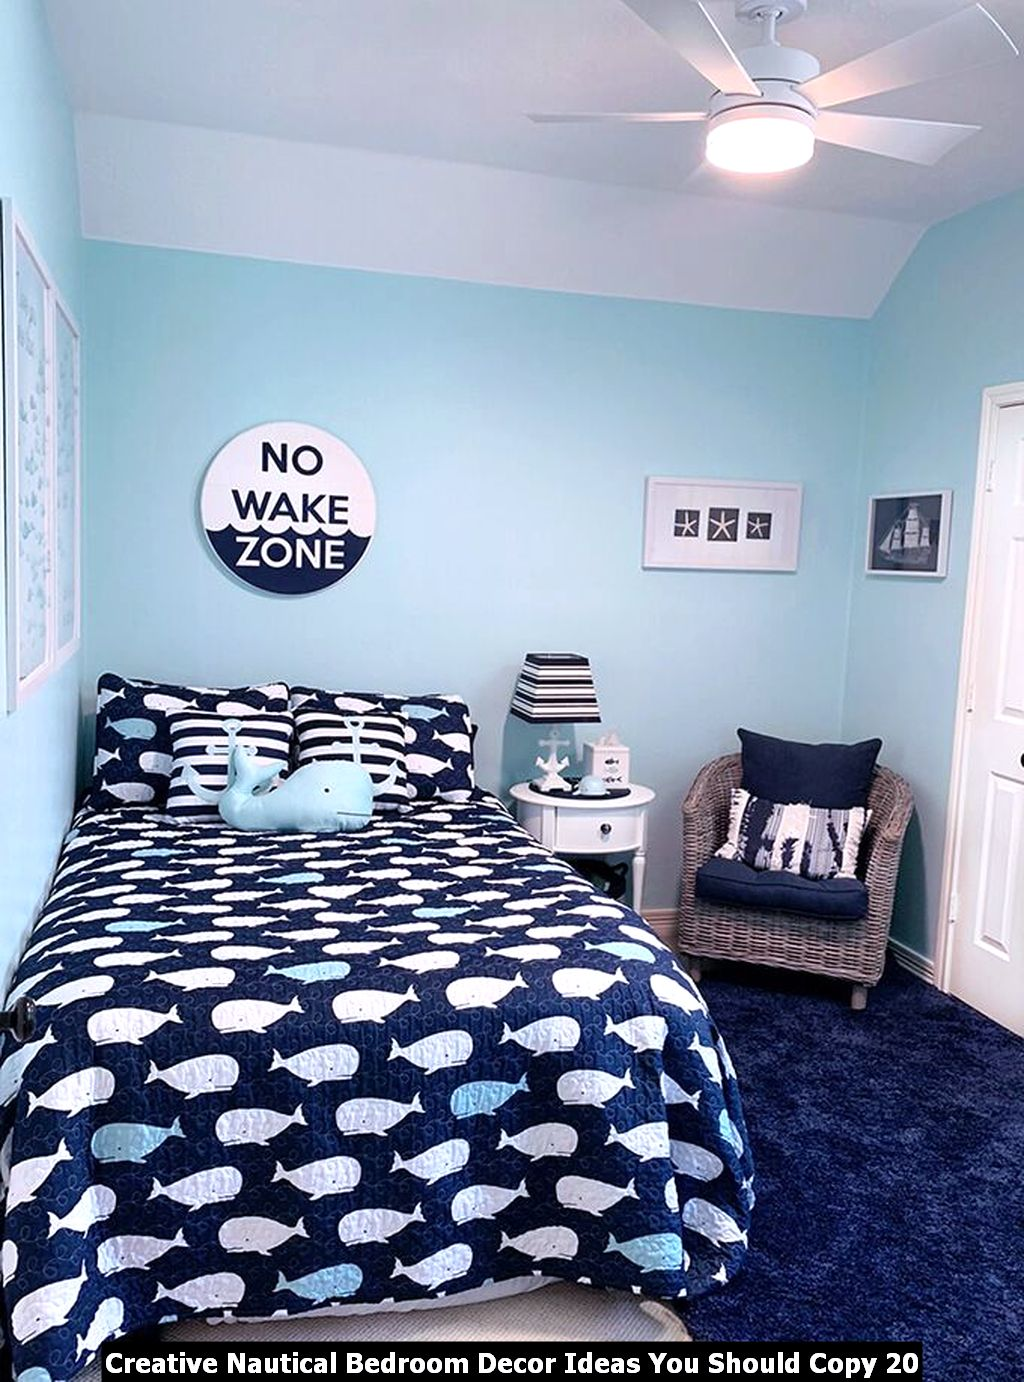 Creative Nautical Bedroom Decor Ideas You Should Copy 20